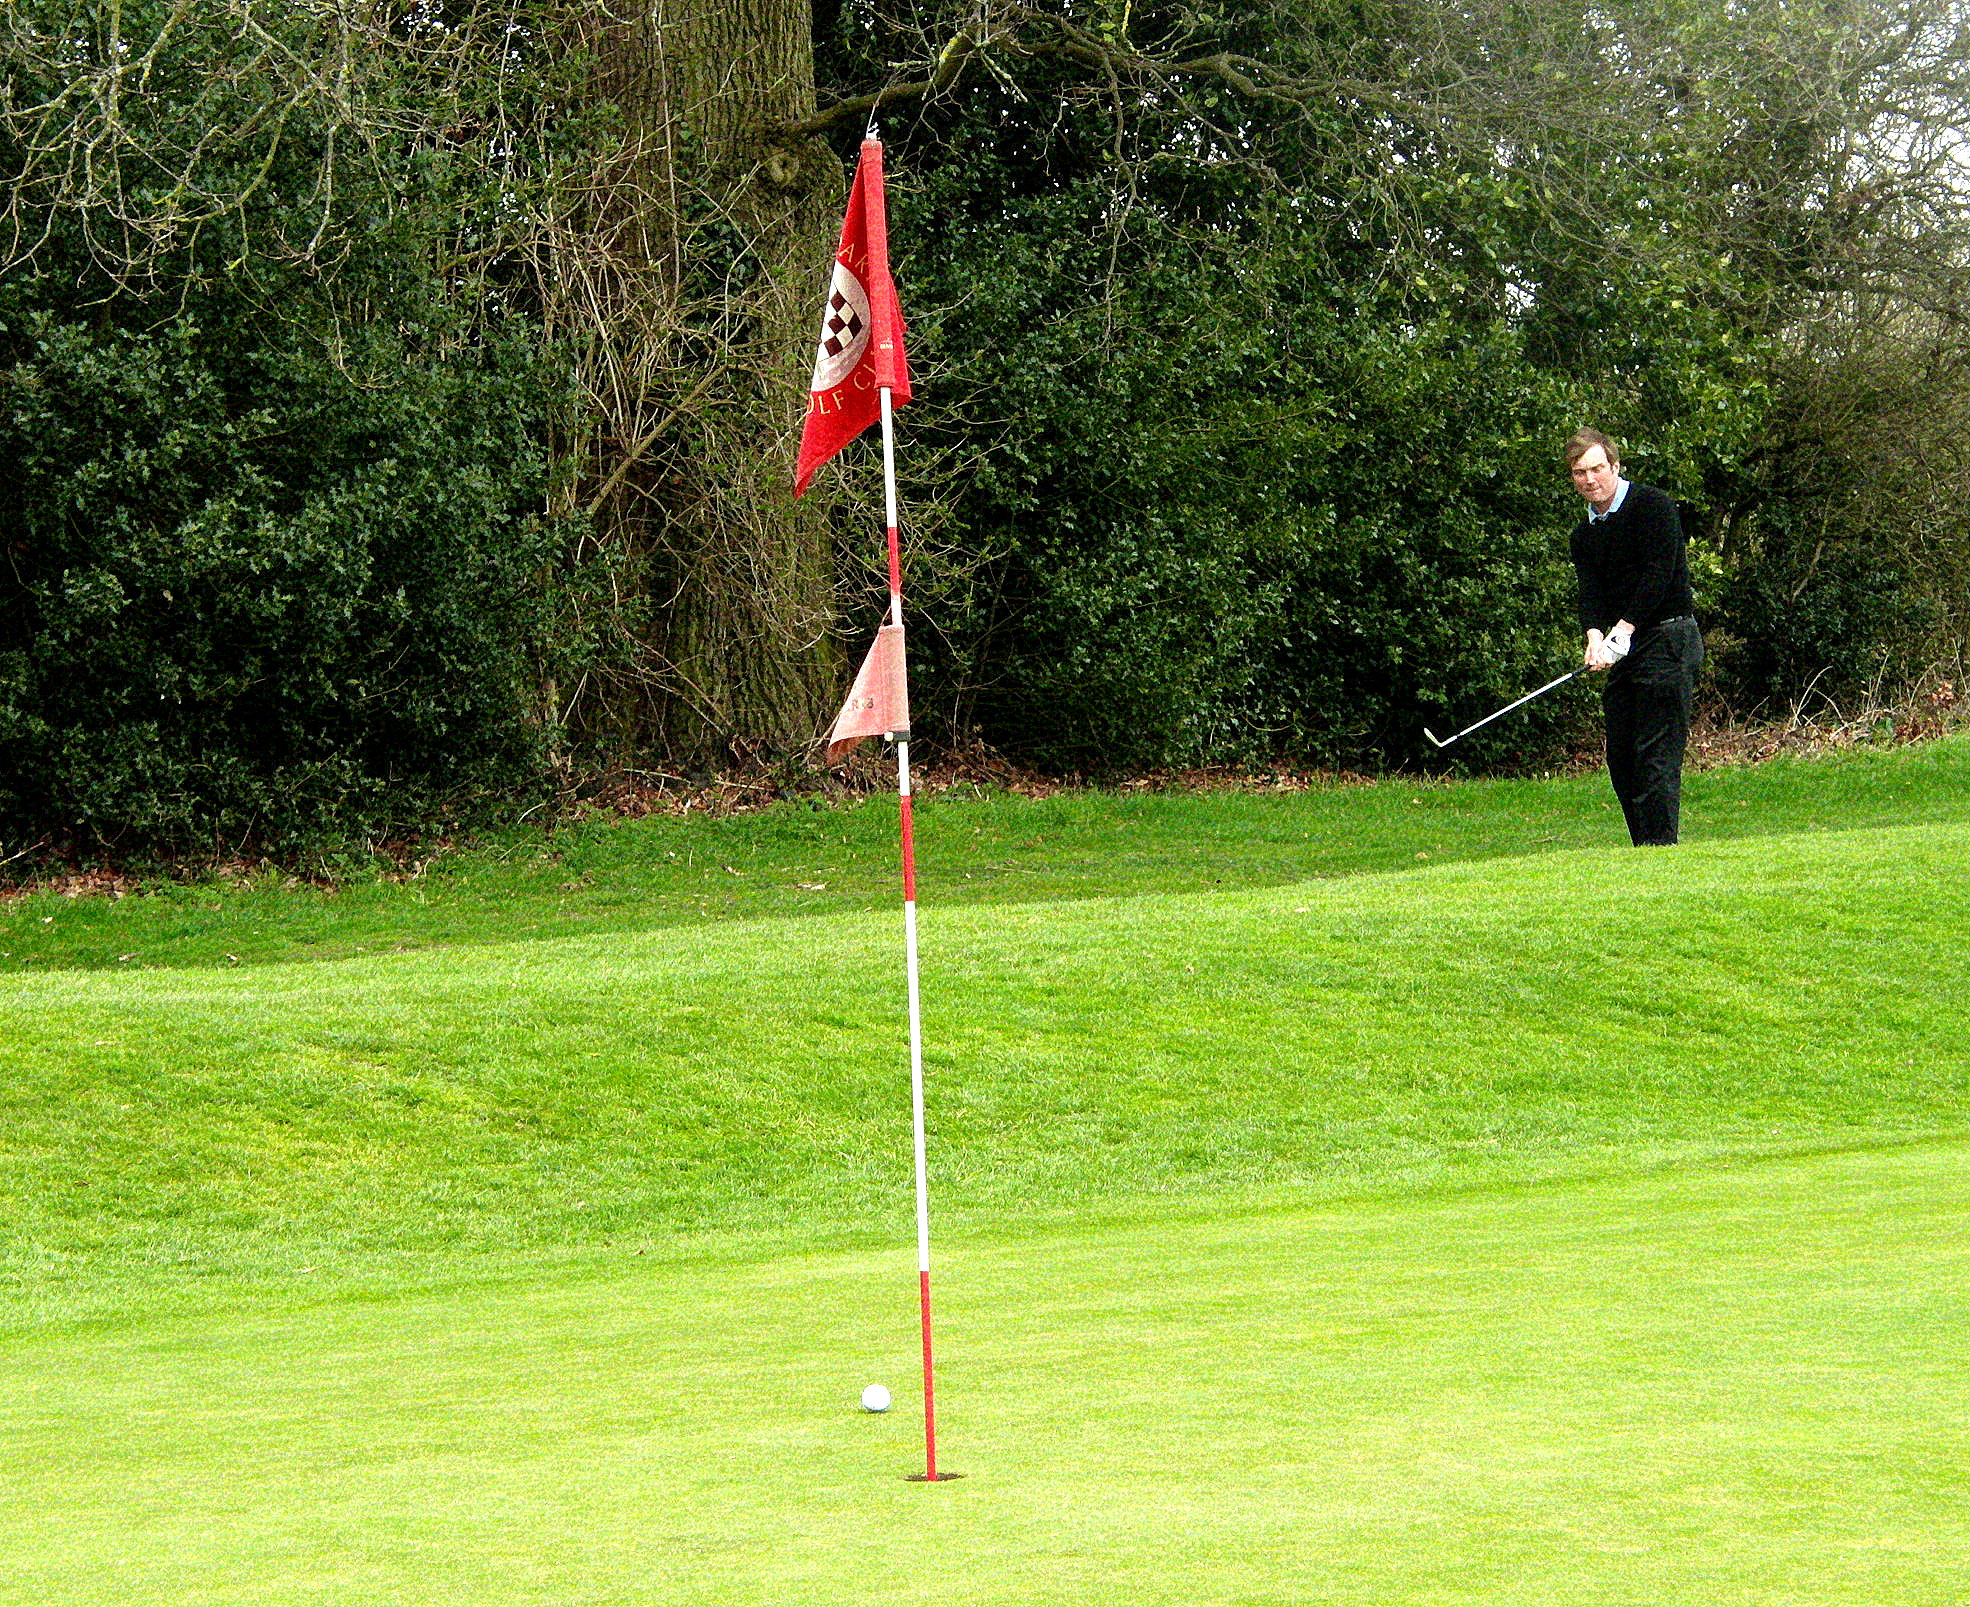 Jeremy Reilly Limitless Golf Professional playing a pitch to the 2nd hole at Chartridge Park Golf Club